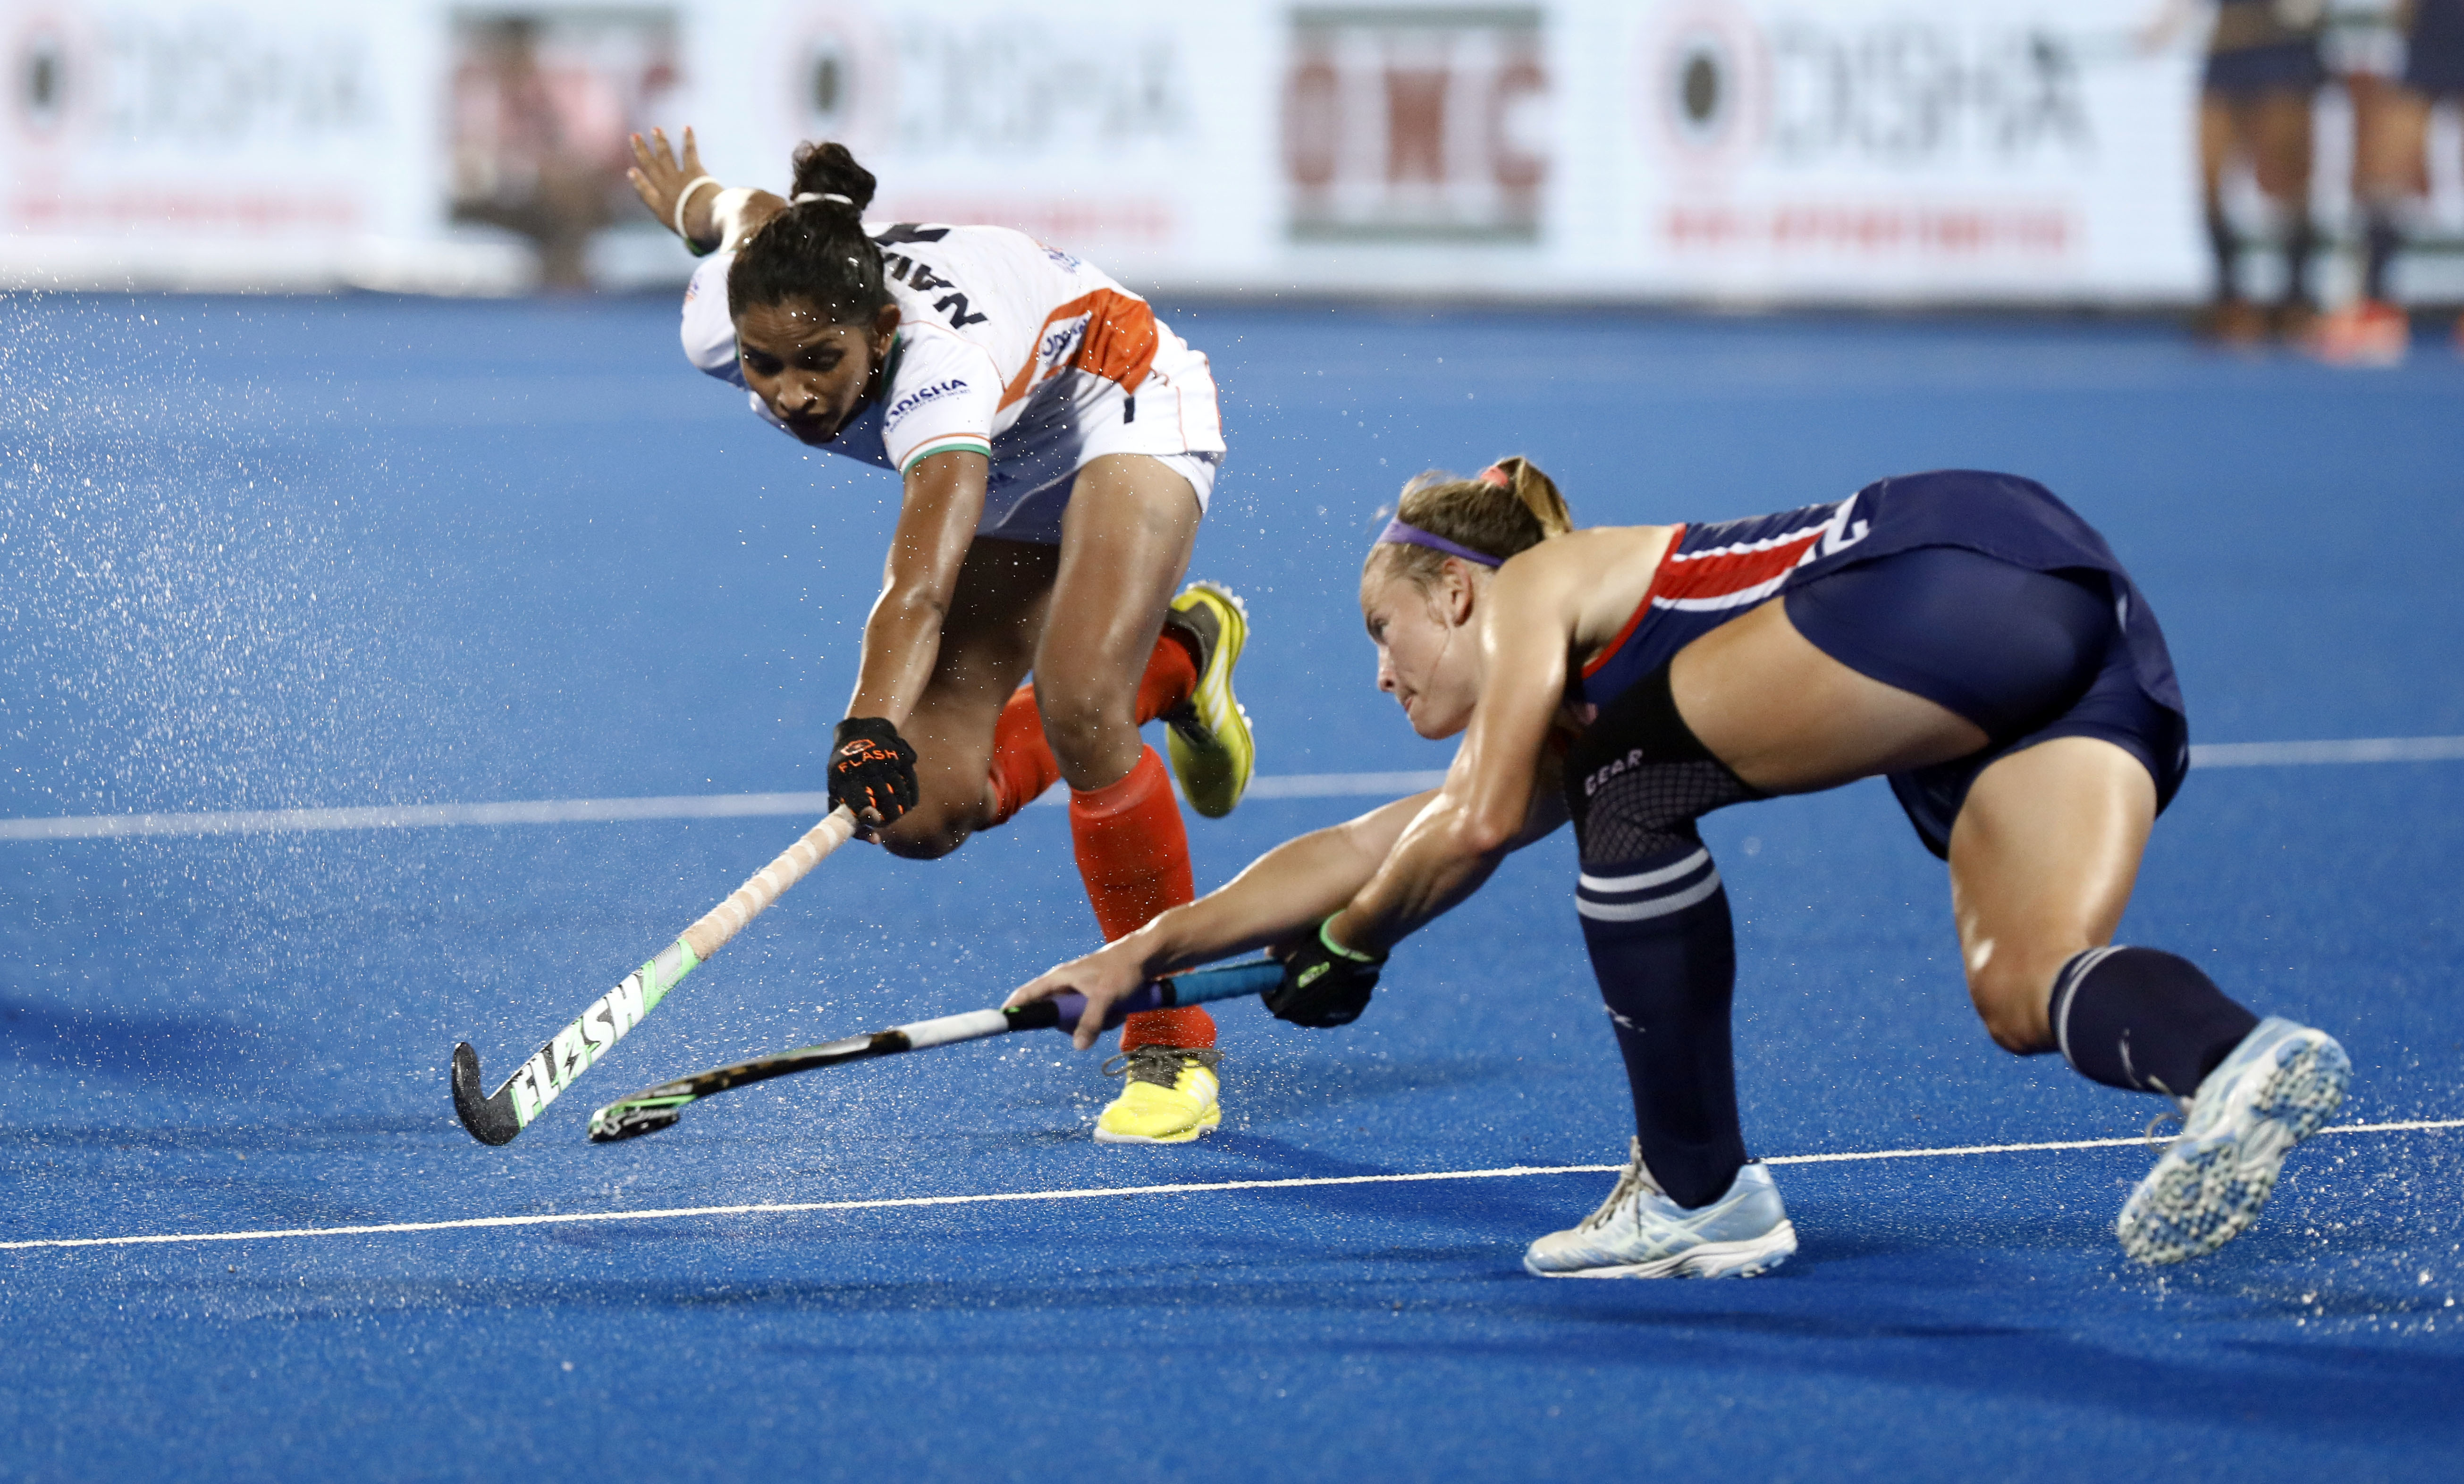 Peaking at the right time will be the most crucial thing for our performance at the Olympics - Navjot Kaur